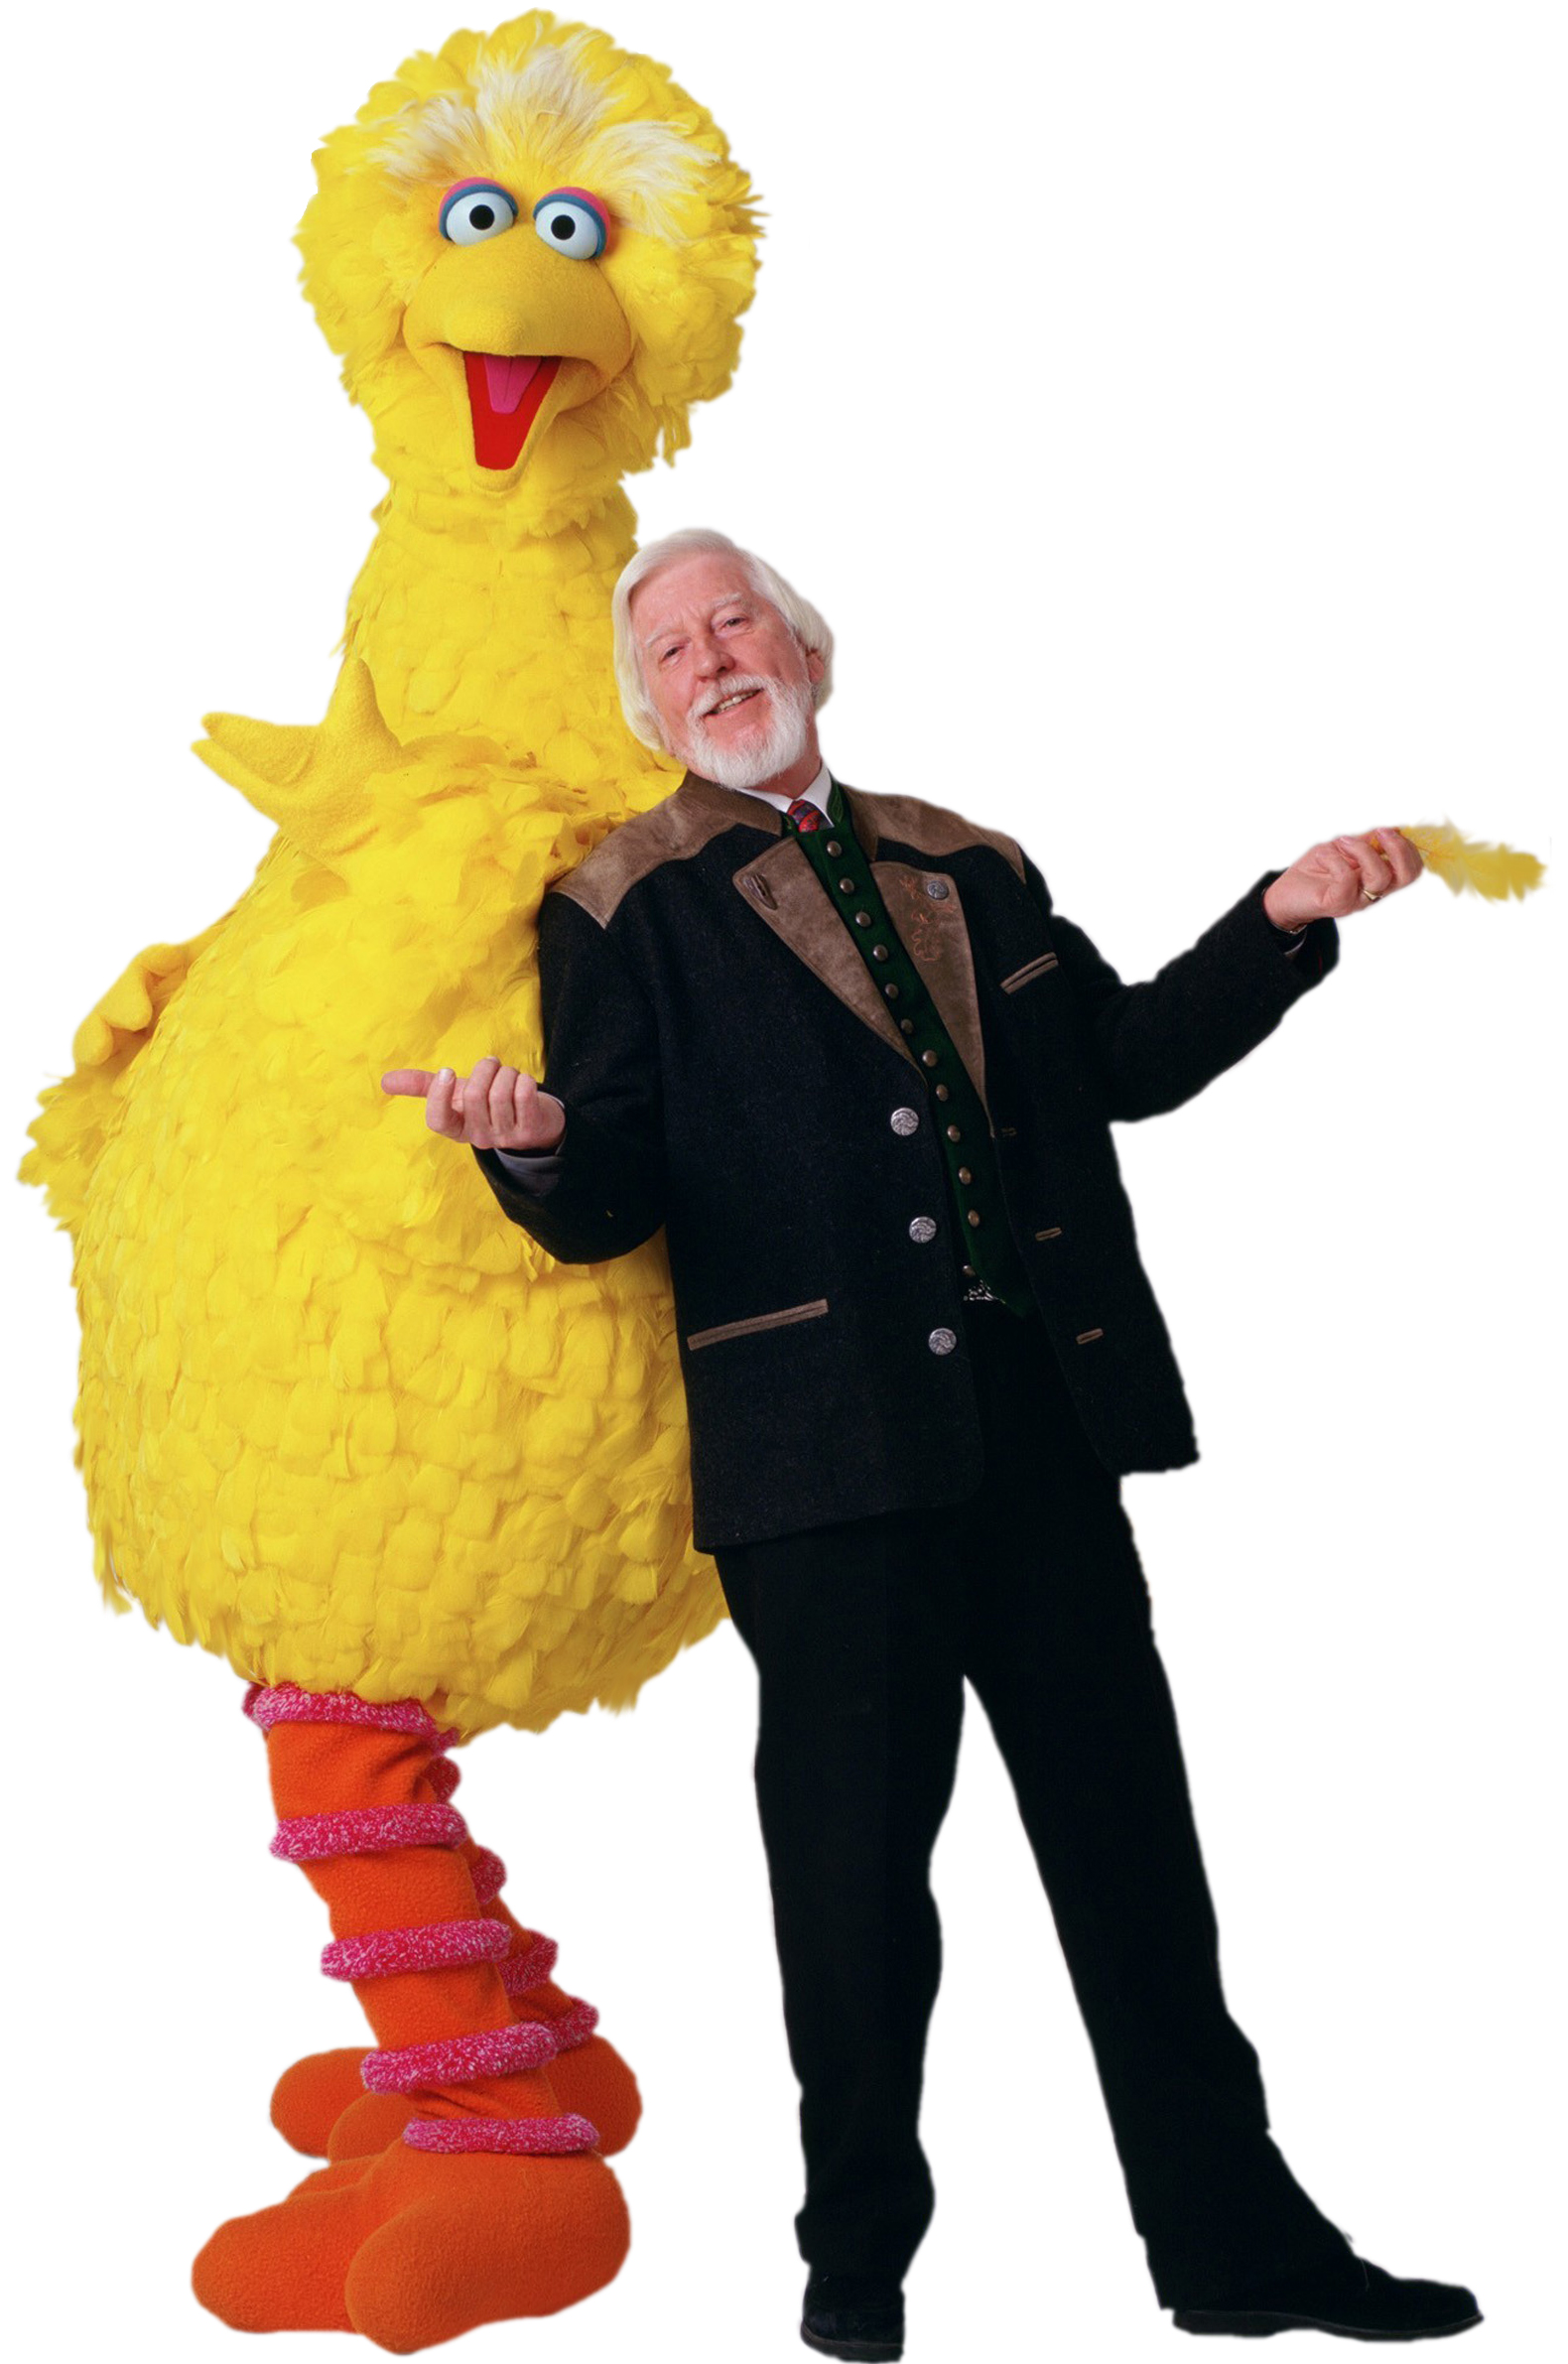 Sesame Street' marks 40 years on air | The Spokesman-Review